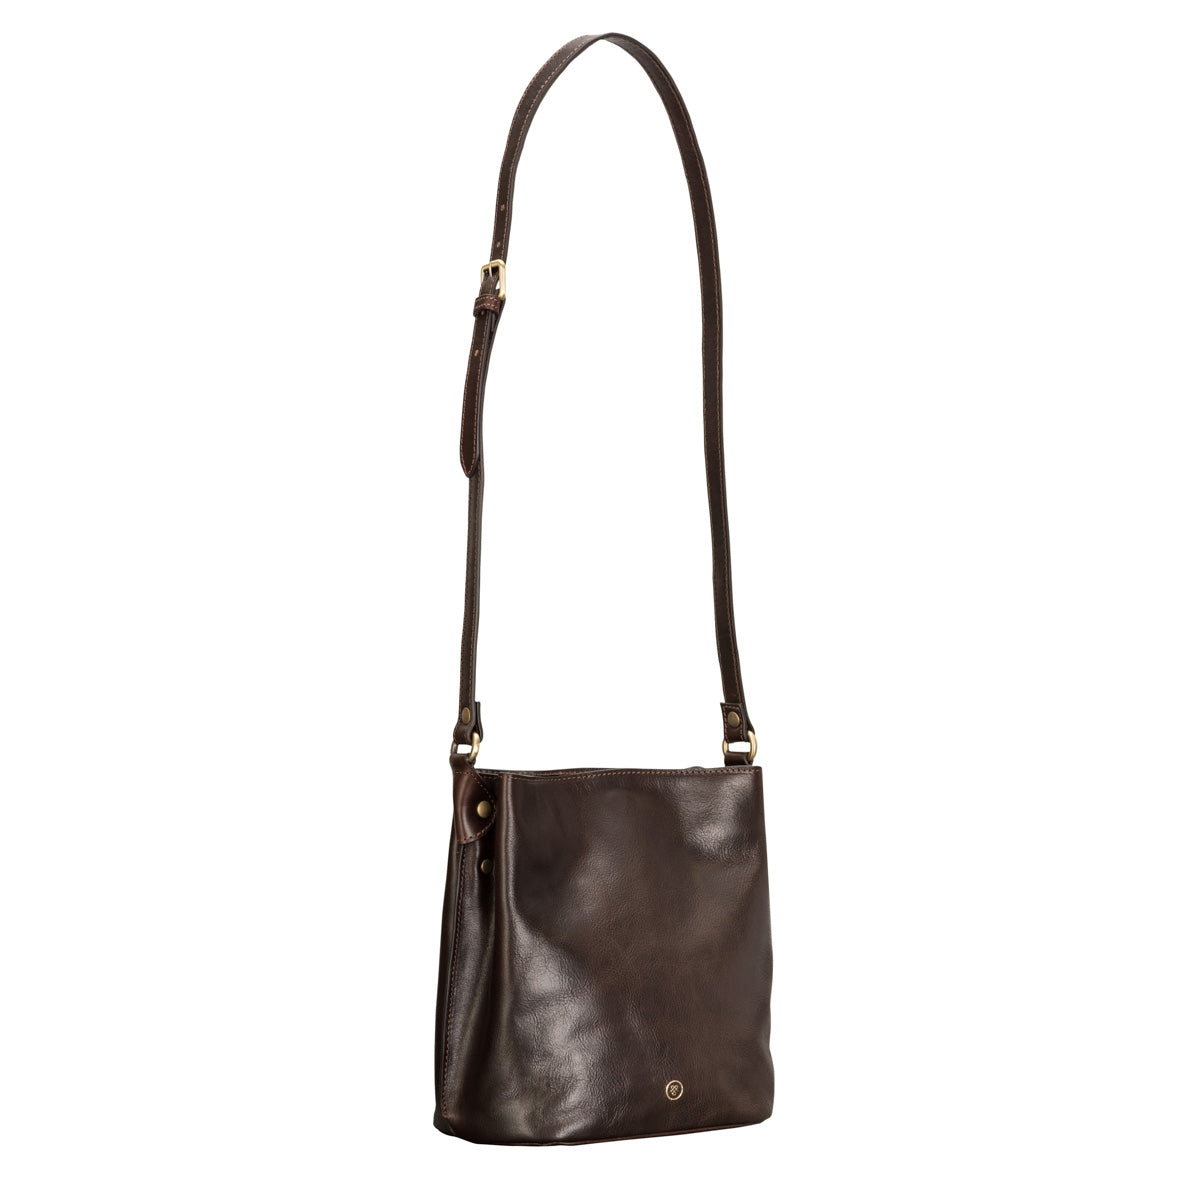 Image 3 of the 'Palermo' Handmade Dark Chocolate Veg-Tanned Leather Shoulder Bag